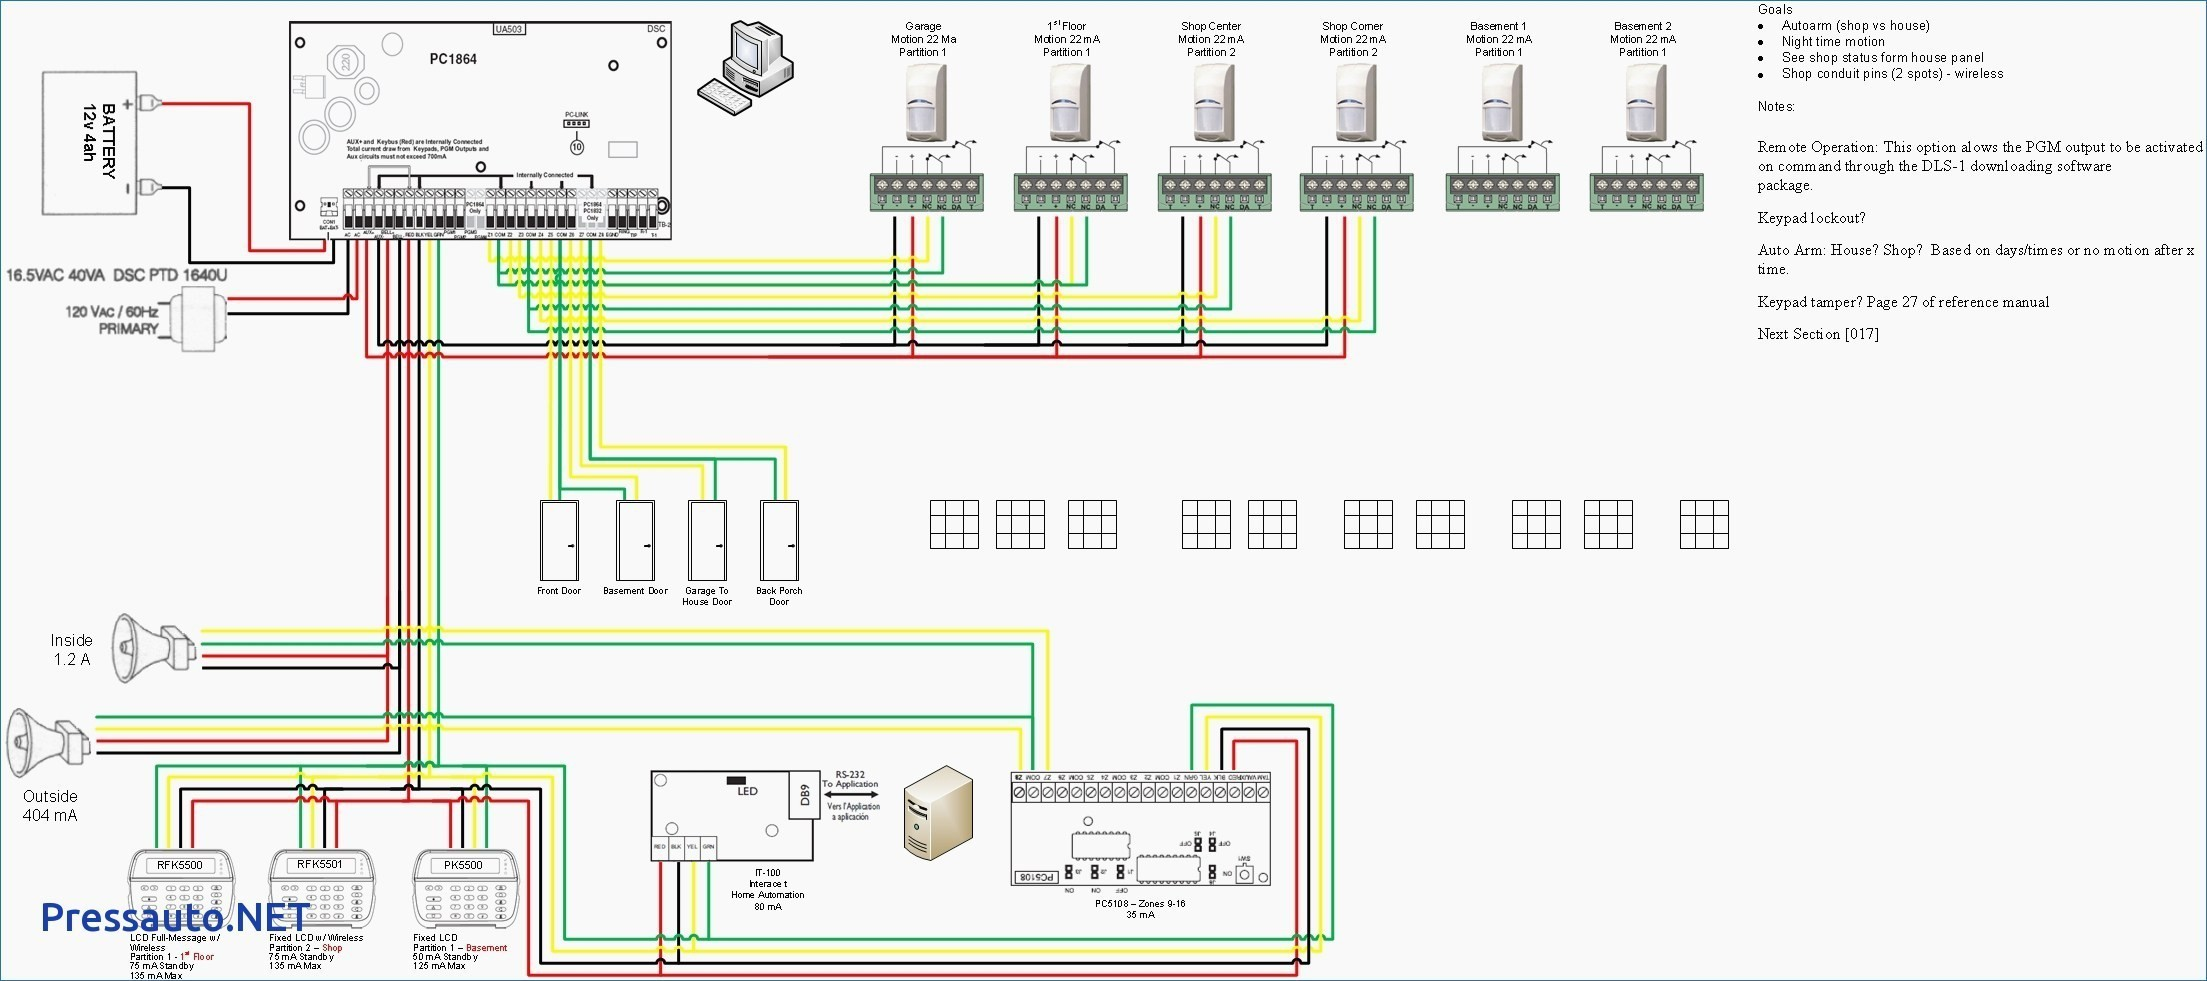 Car Security System Wiring Diagram Security Wiring Diagrams Wiring Diagram toolbox Of Car Security System Wiring Diagram